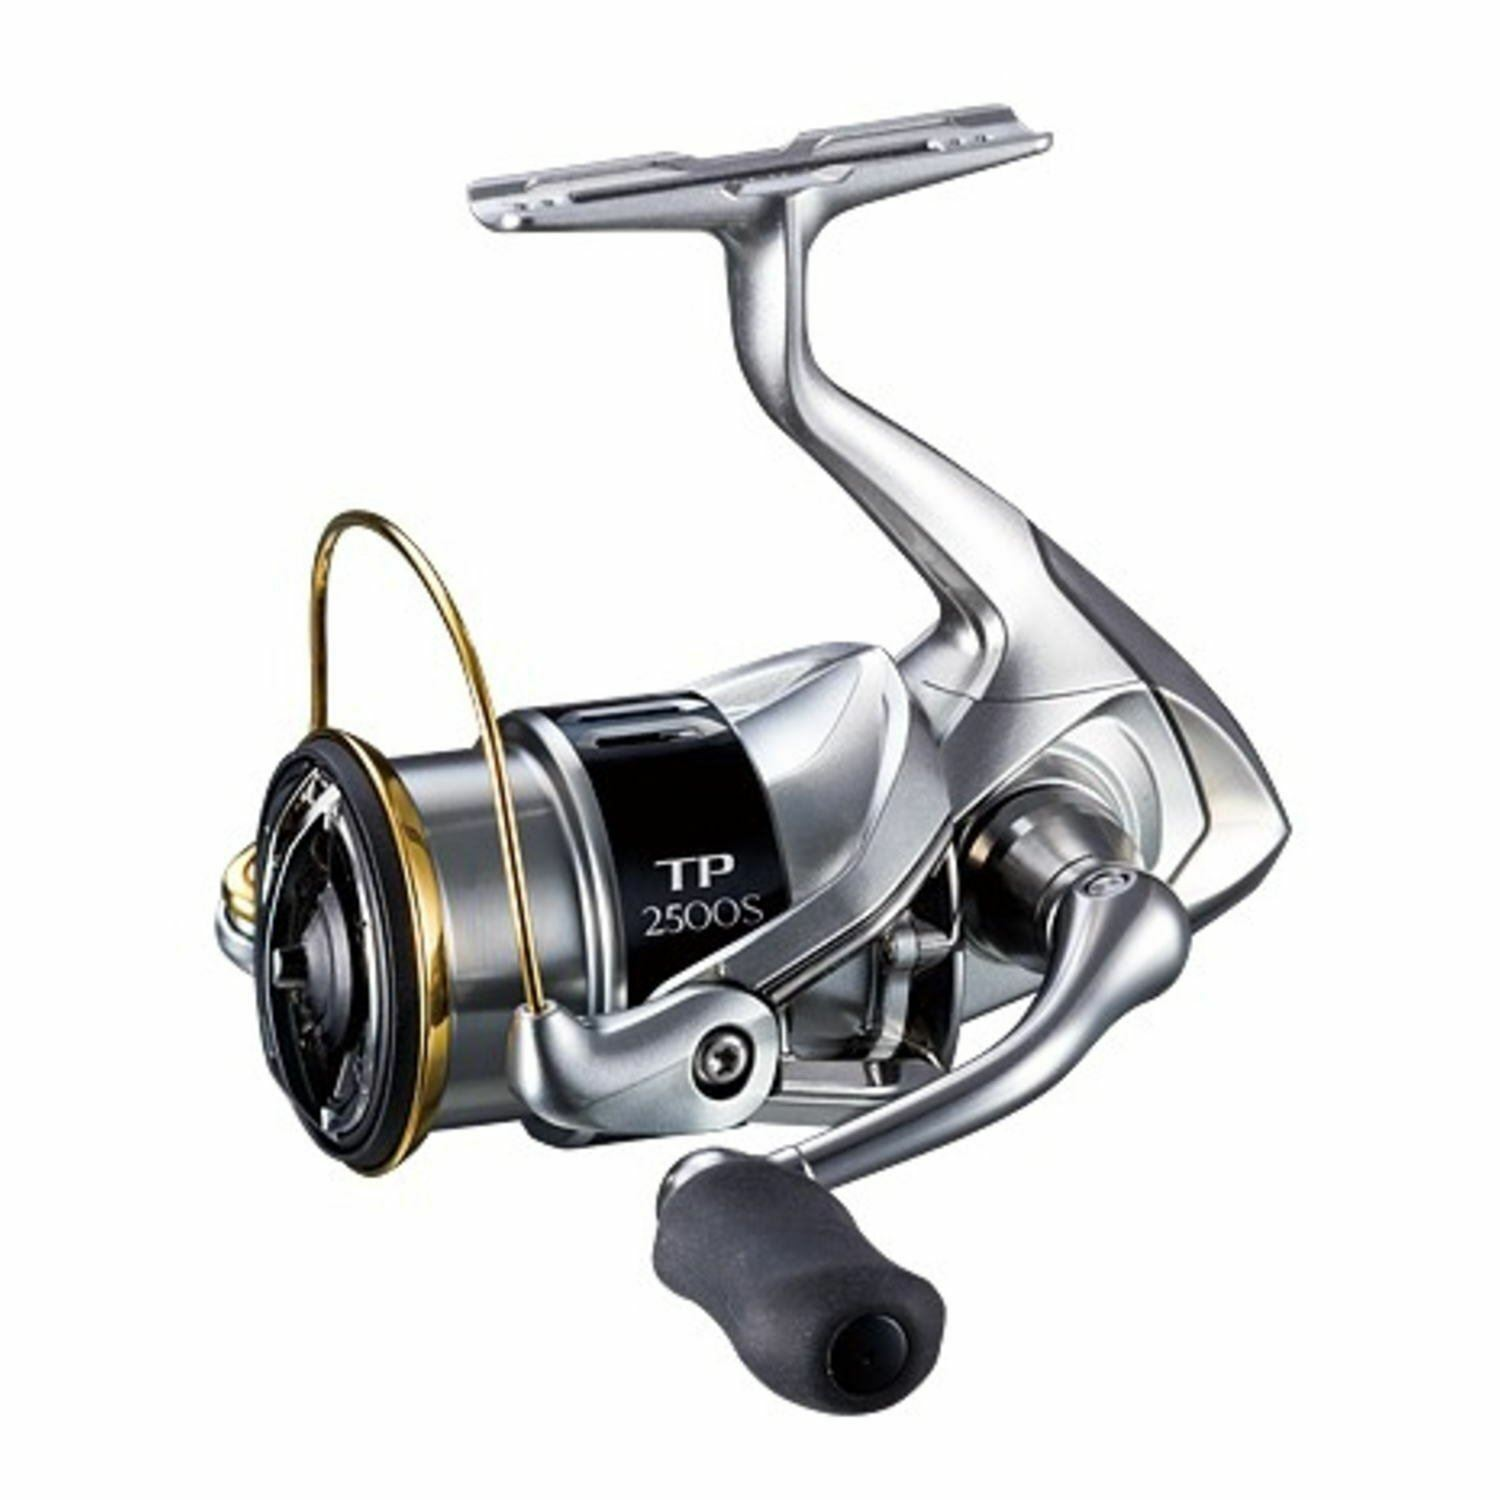 Shimano 15 TWIN POWER 2500S Spining Reel from Japan New